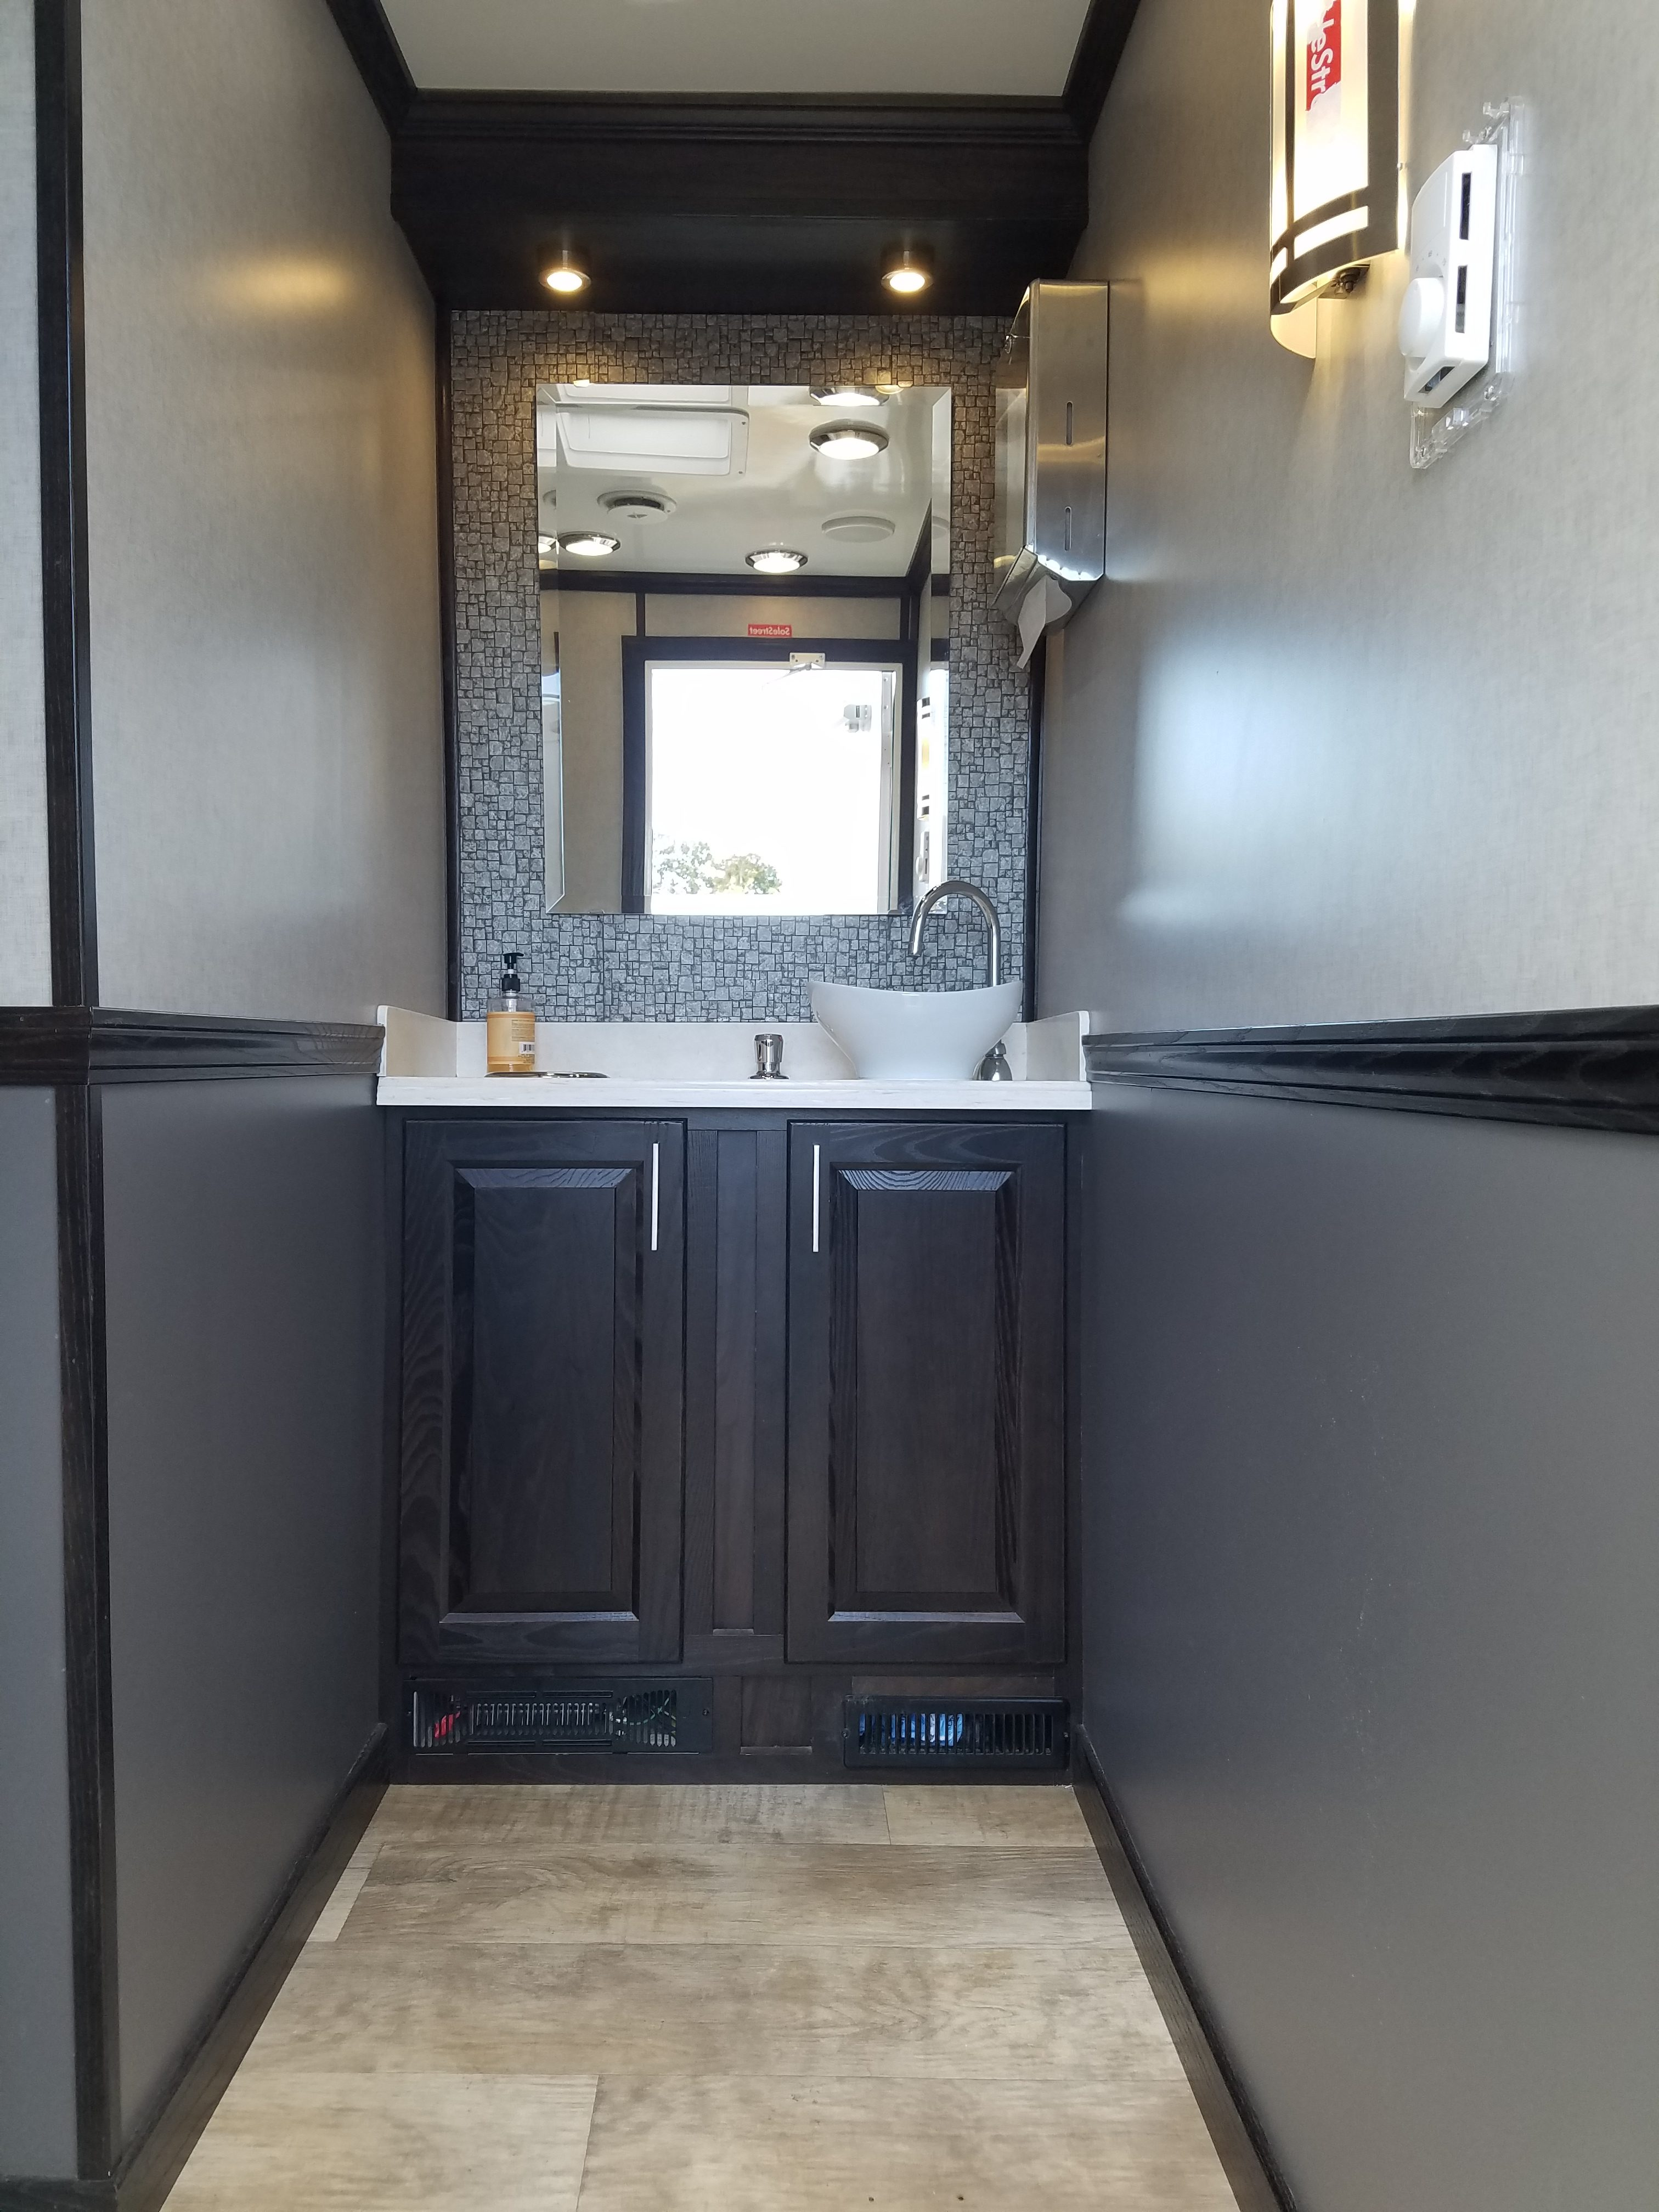 Zoomed out inside view of restroom station with a mirror and sink